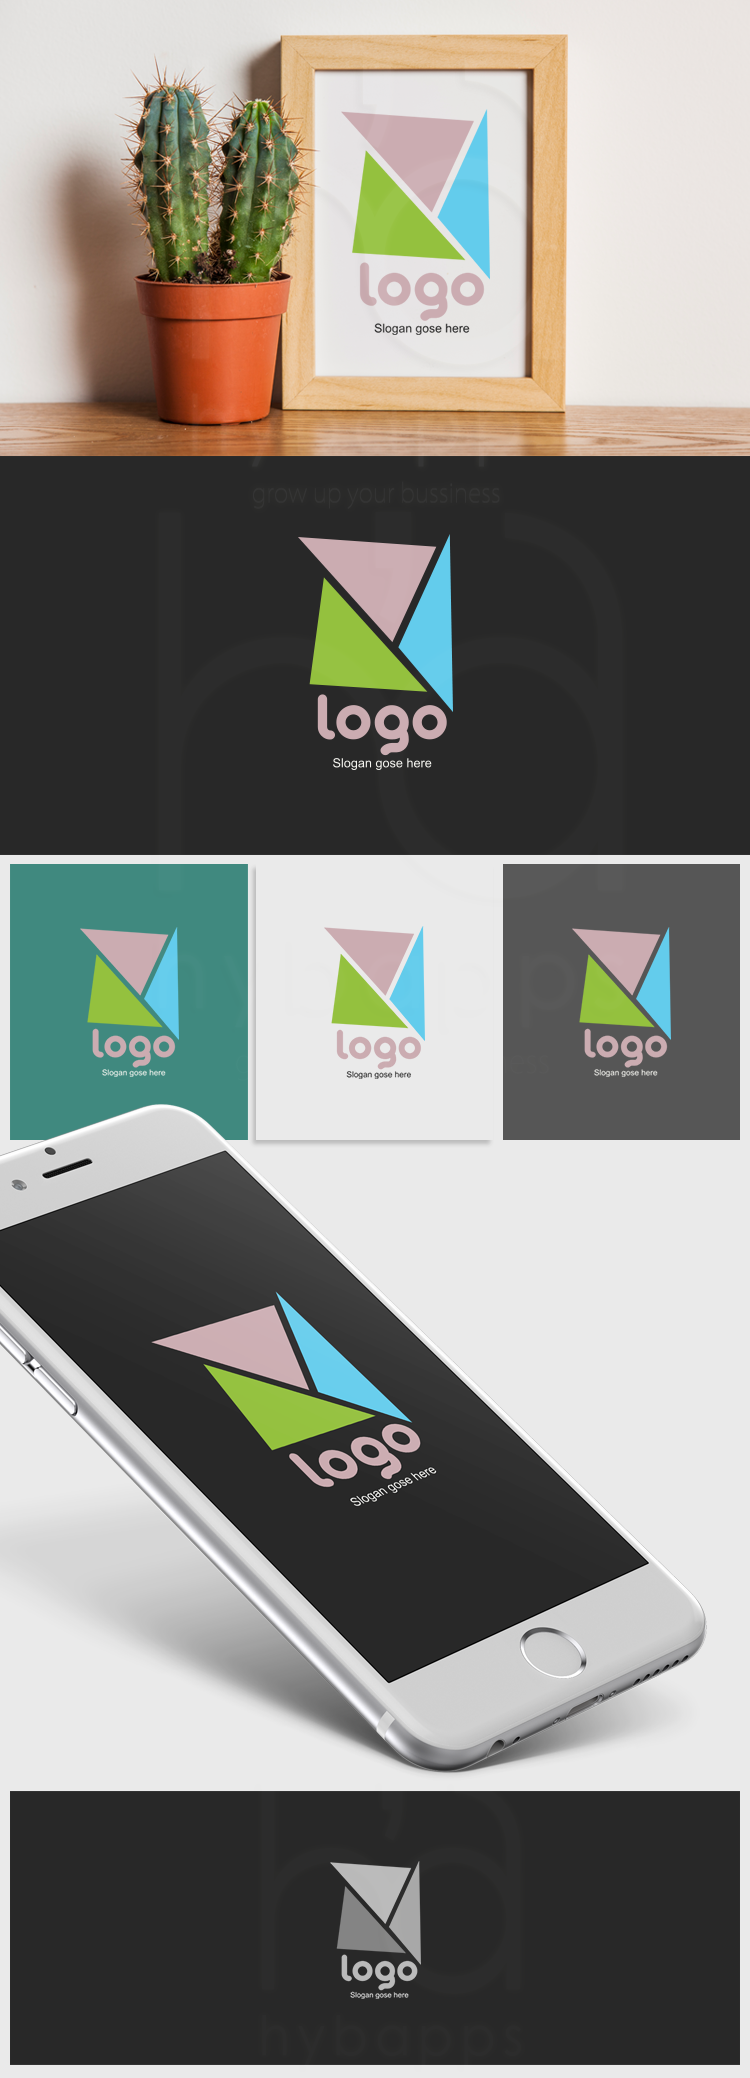 Interior design logo-ionic app theme